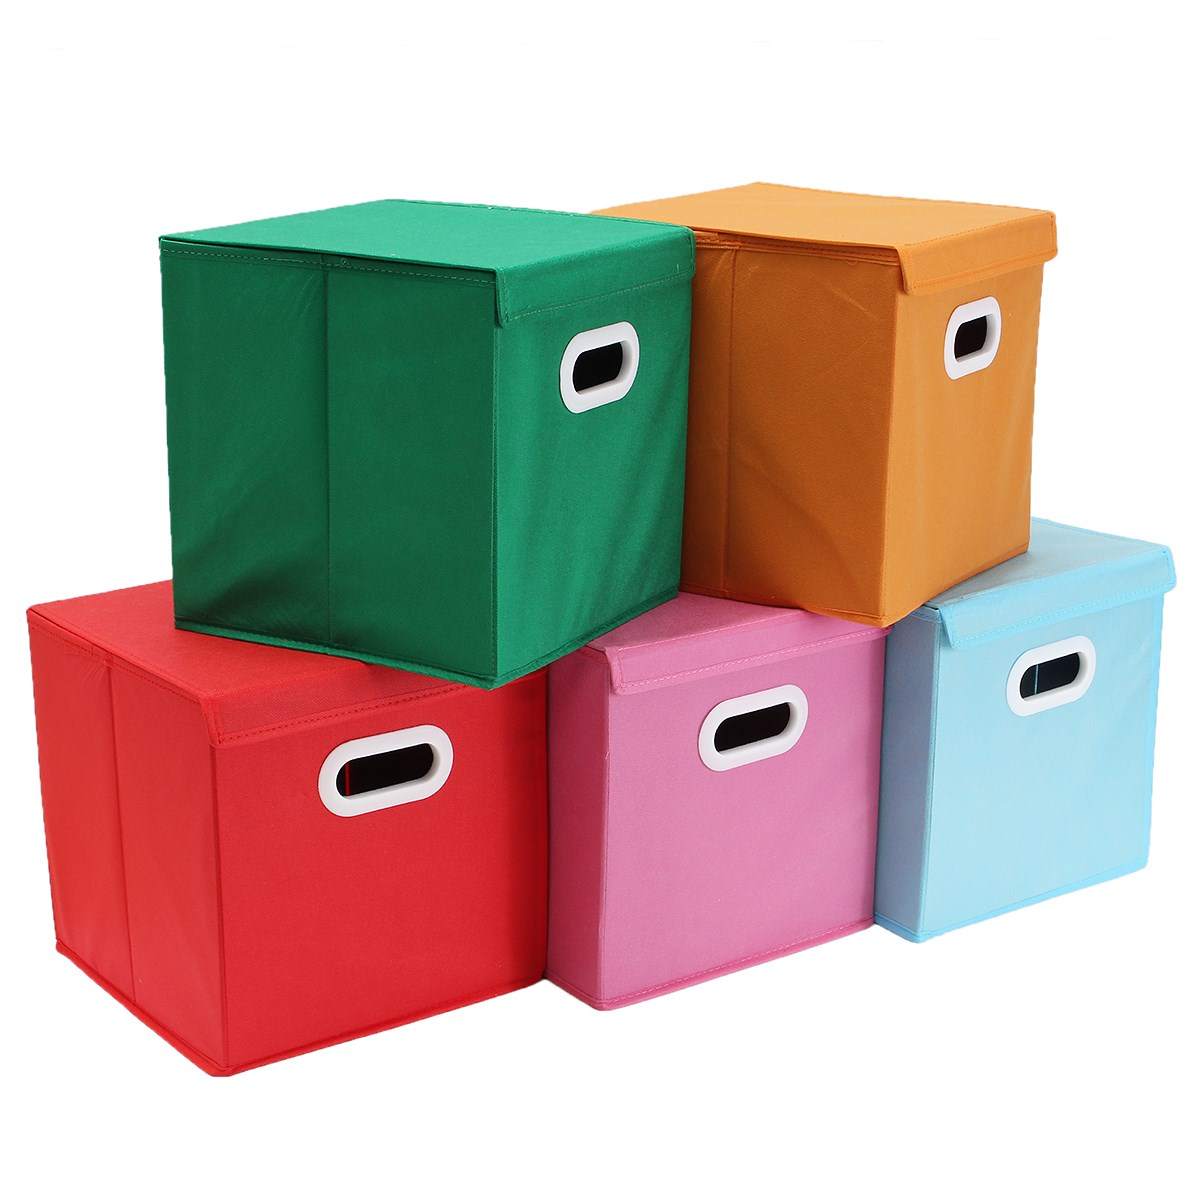 popular modern toy boxbuy cheap modern toy box lots from china  - toy boxes foldable clothing storage box large clothes receive arrange storecontent nonwoven receive